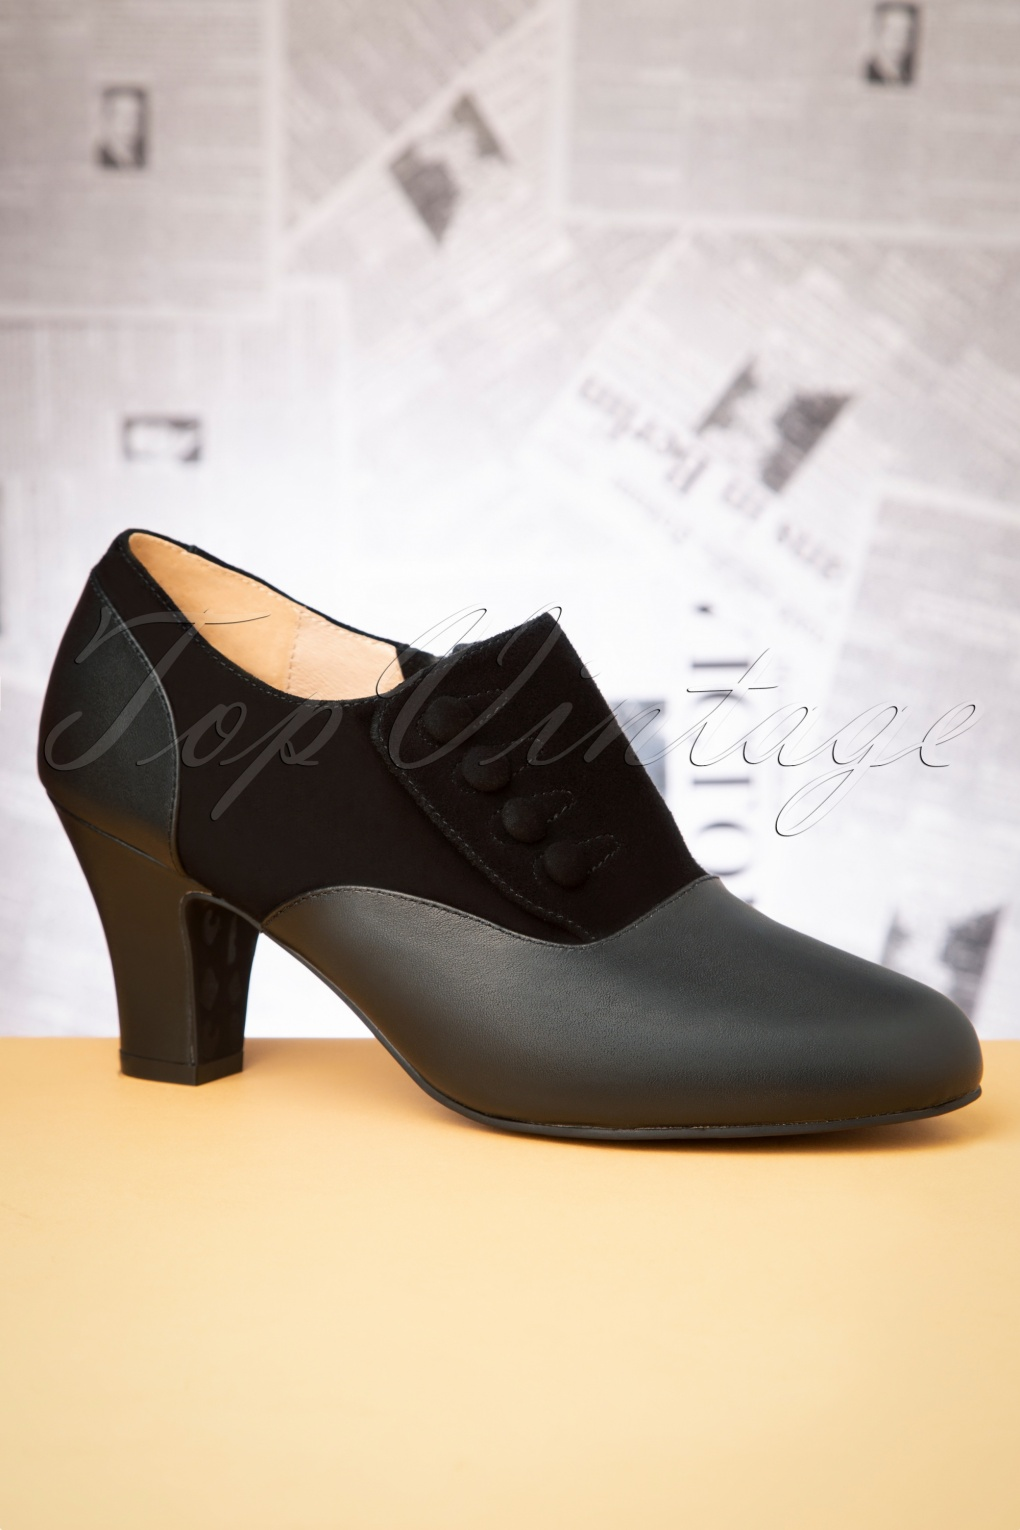 Vintage Heels, Retro Heels, Pumps, Shoes 40s Ava Right On Time Shoe Booties in Black £107.32 AT vintagedancer.com